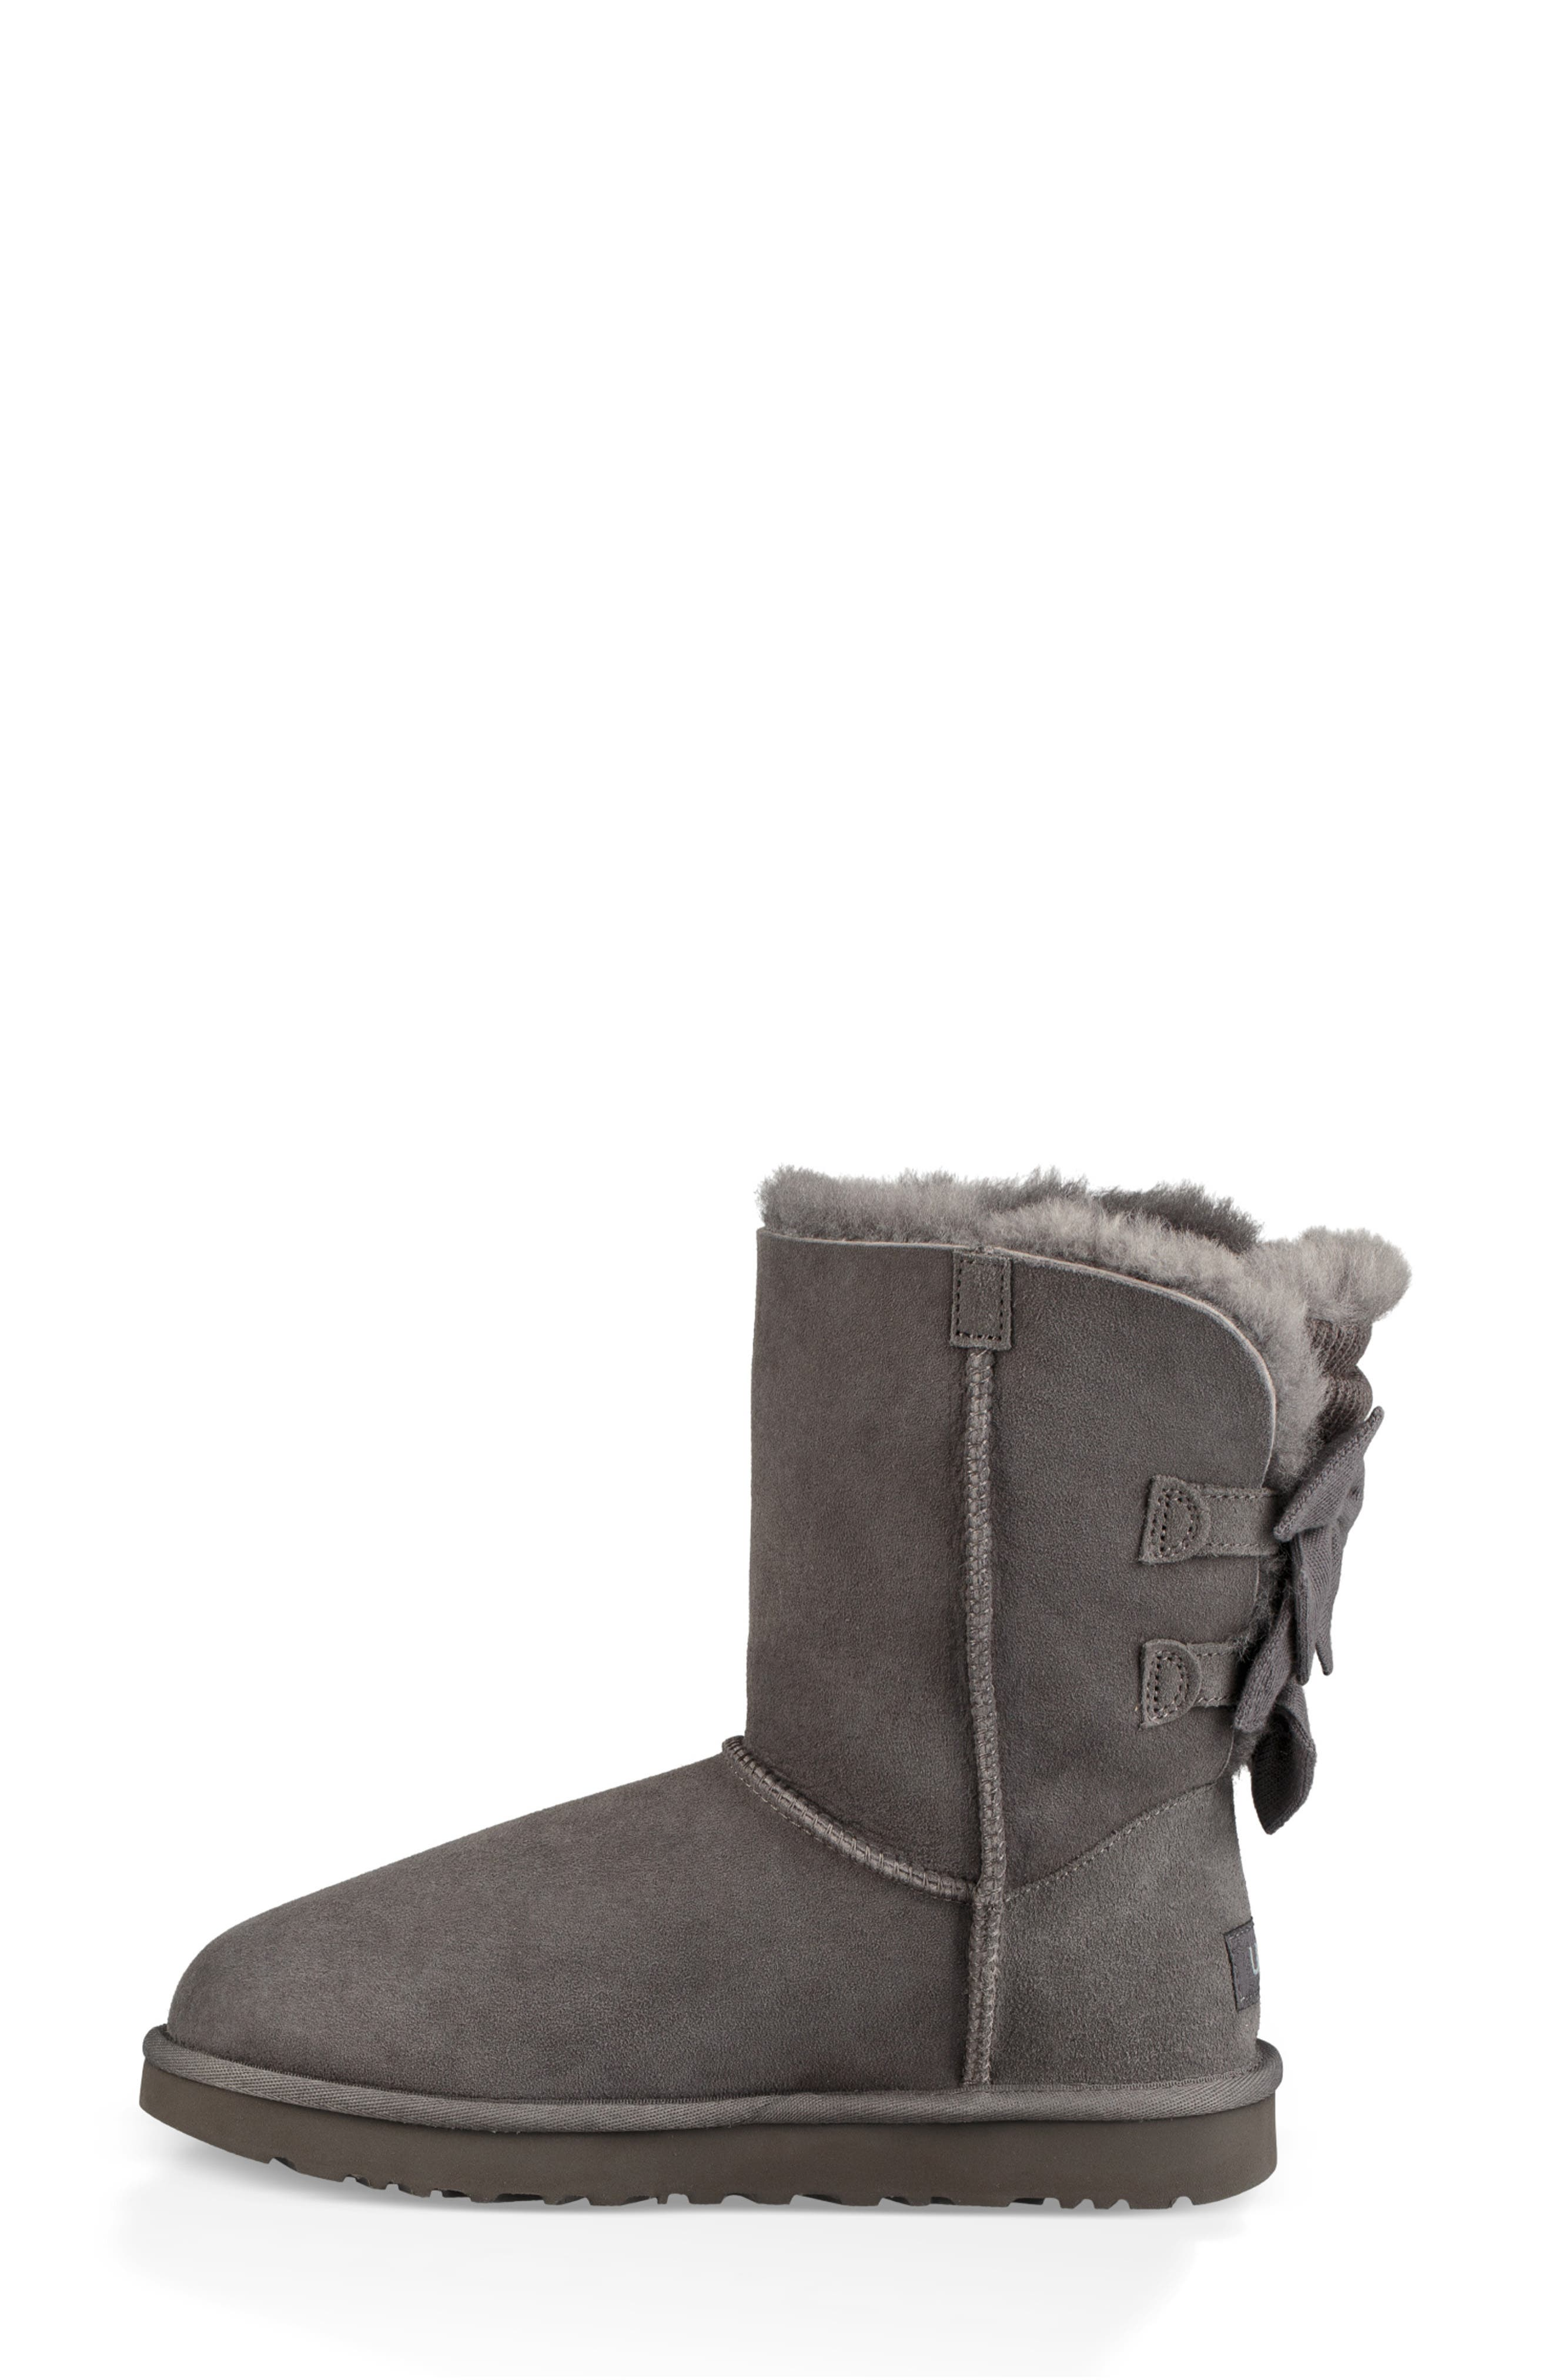 Bailey Bow Genuine Shearling Bootie,                             Alternate thumbnail 6, color,                             020